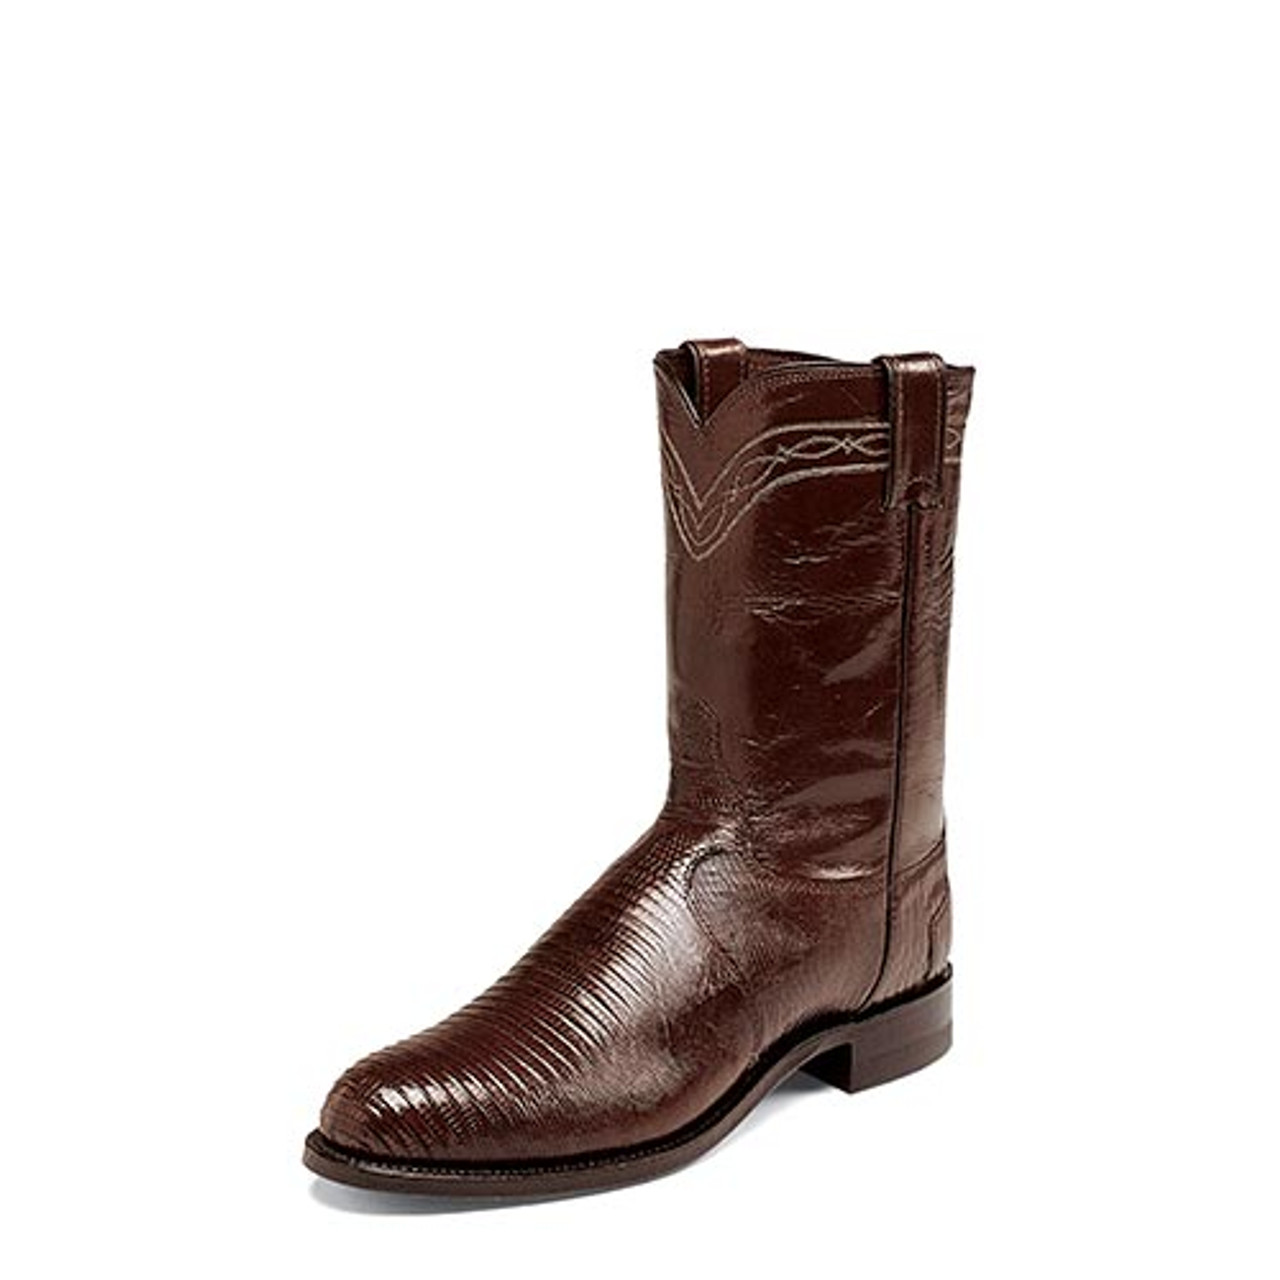 e0f4b88471b4 Justin Men's Western Exotic- Jabin Chocolate Lizard Vamp - Billy's ...